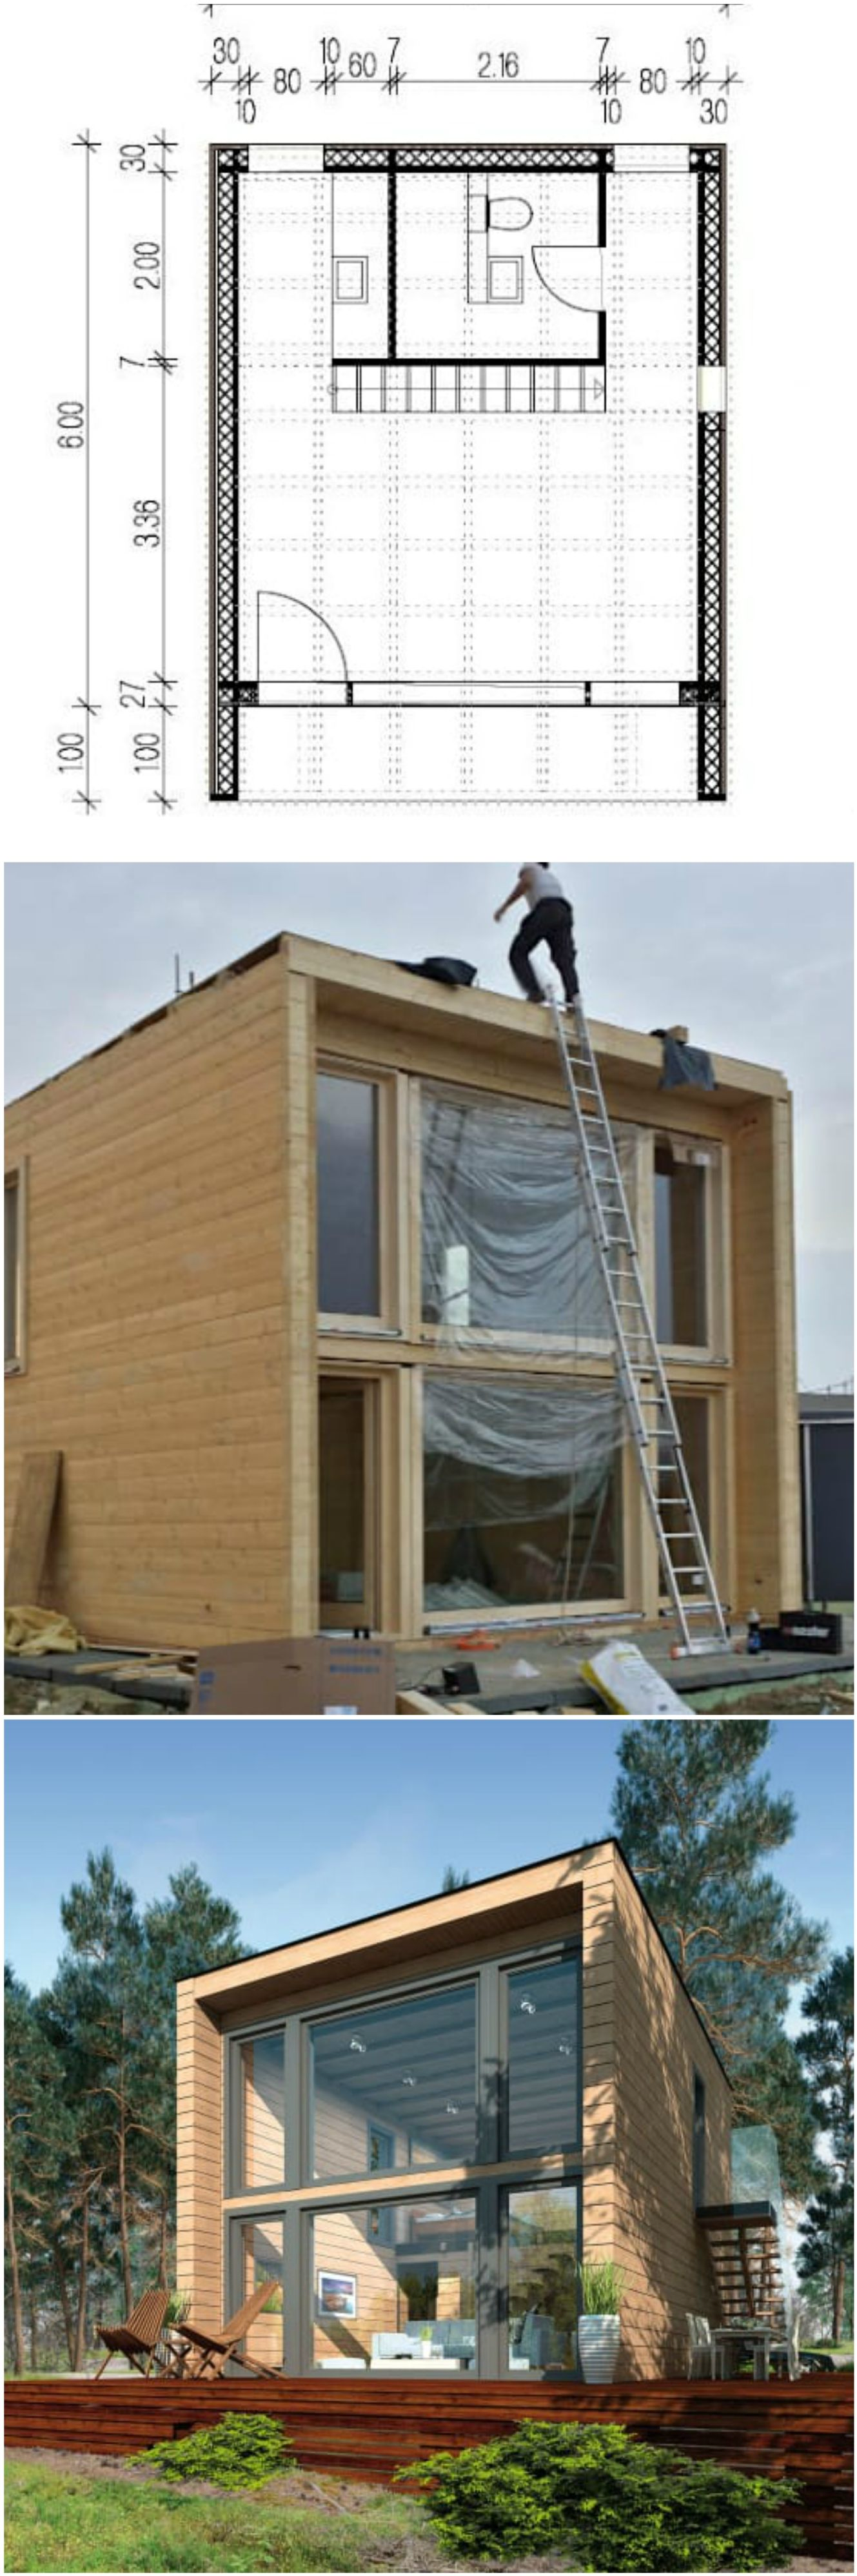 A Prefabricated Home That Ll Answer Your Housing Prayers Me And